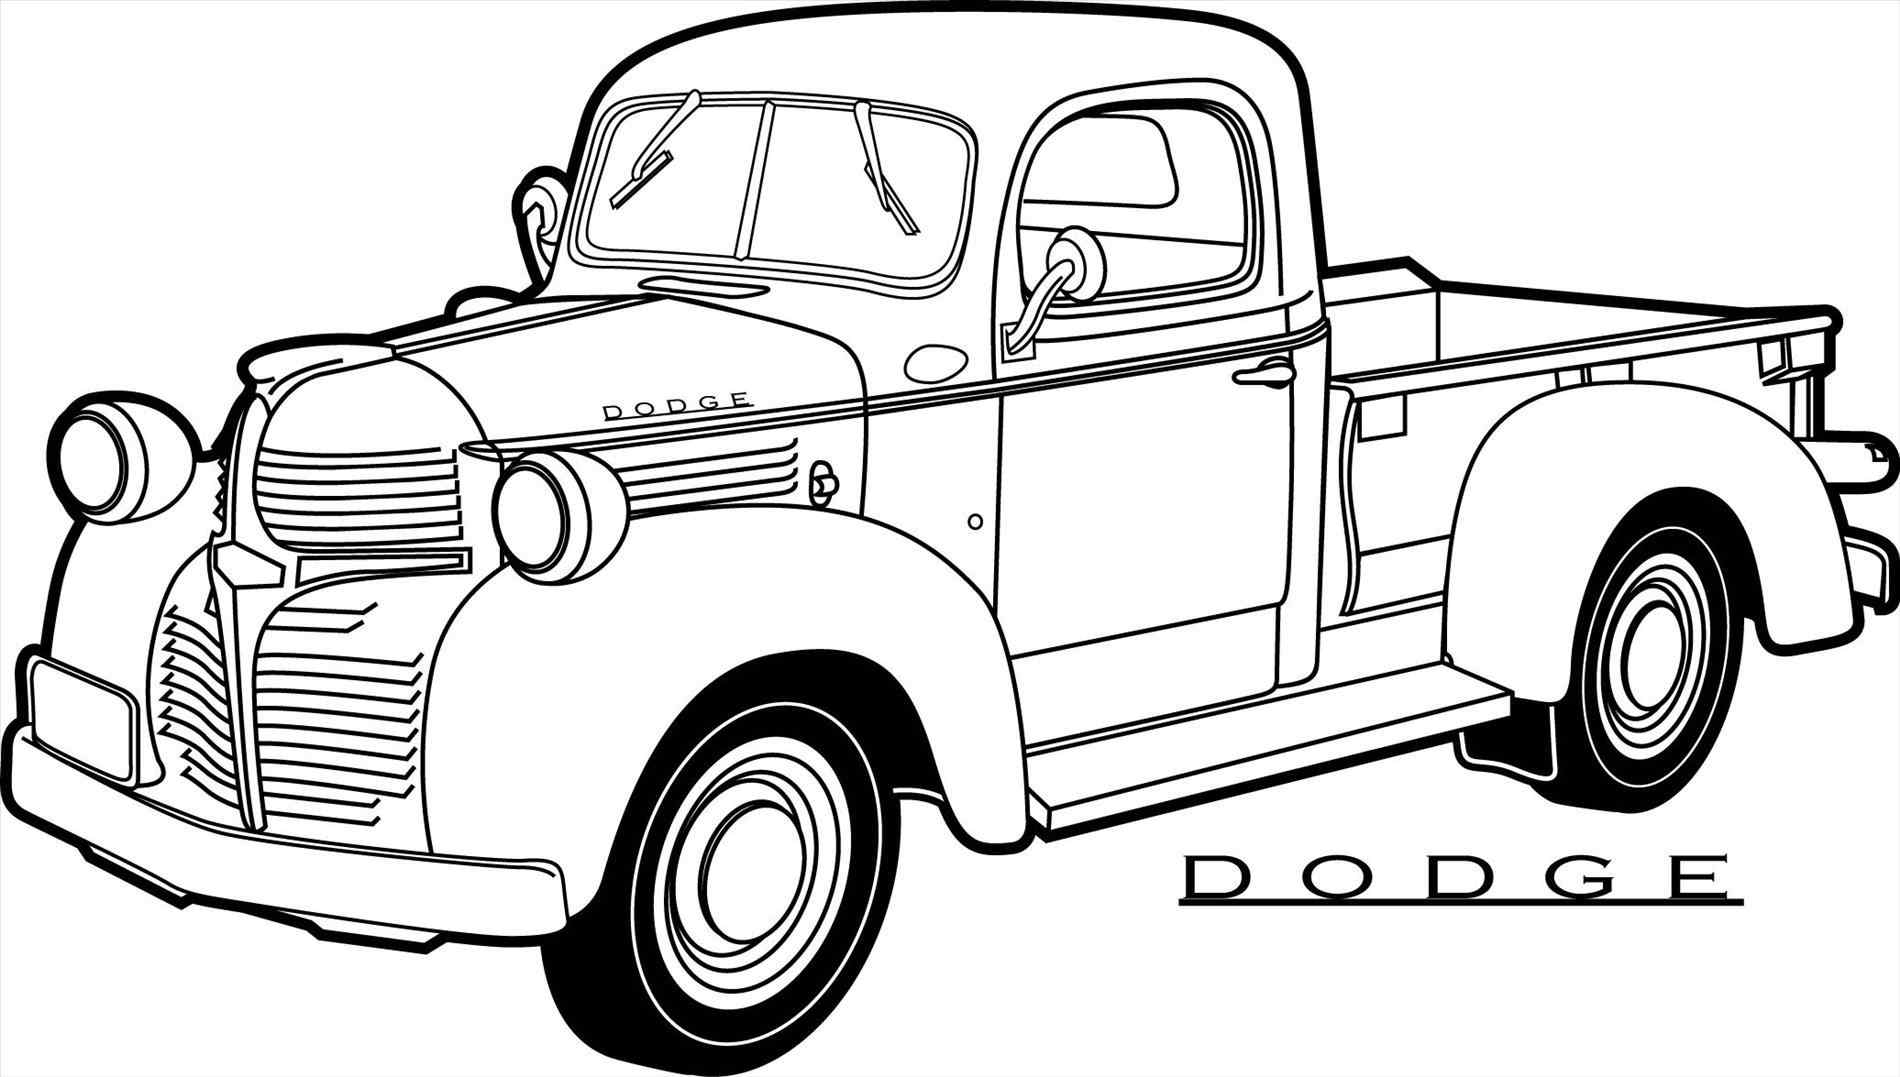 Dodge Truck Silhouette At Getdrawings